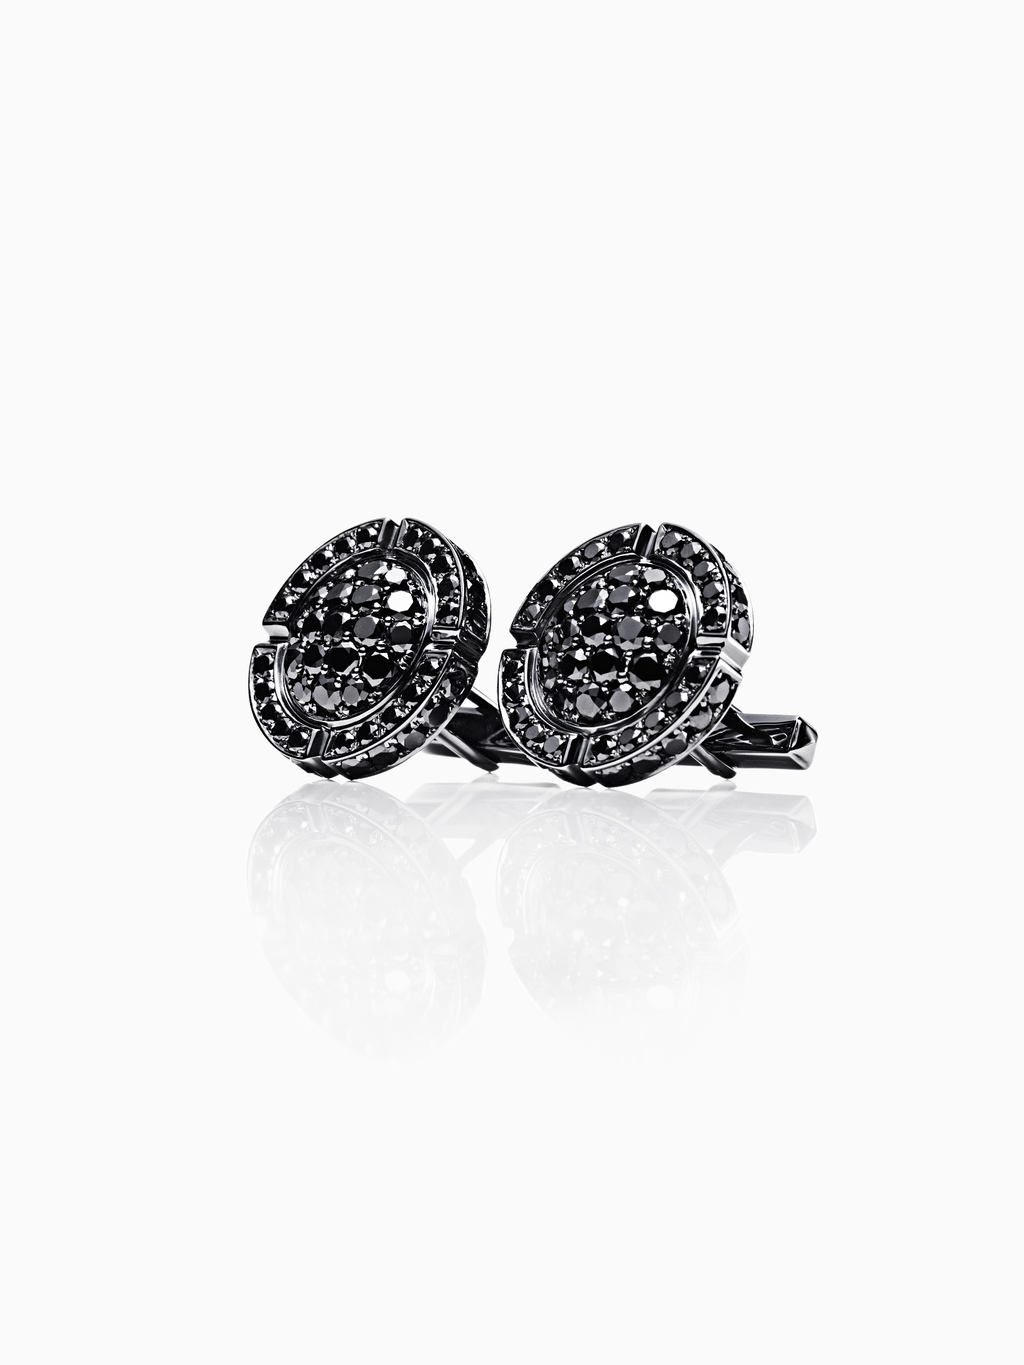 Adrastea / Cufflinks / Diamond / Silver